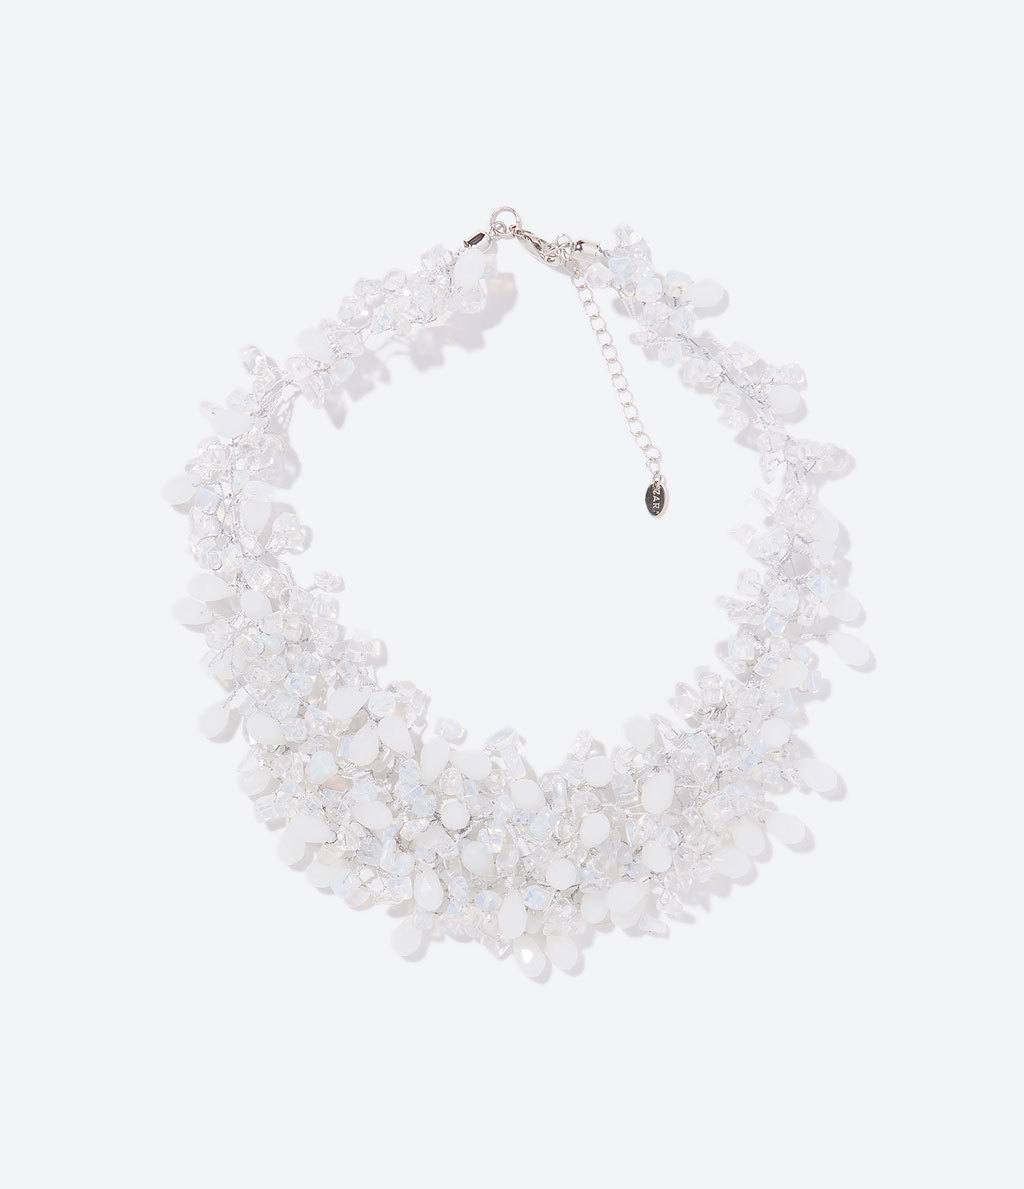 Crystals Necklace - predominant colour: white; occasions: evening, occasion; length: short; size: large/oversized; material: chain/metal; finish: plain; embellishment: crystals/glass; secondary colour: clear; style: bib/statement; season: s/s 2014